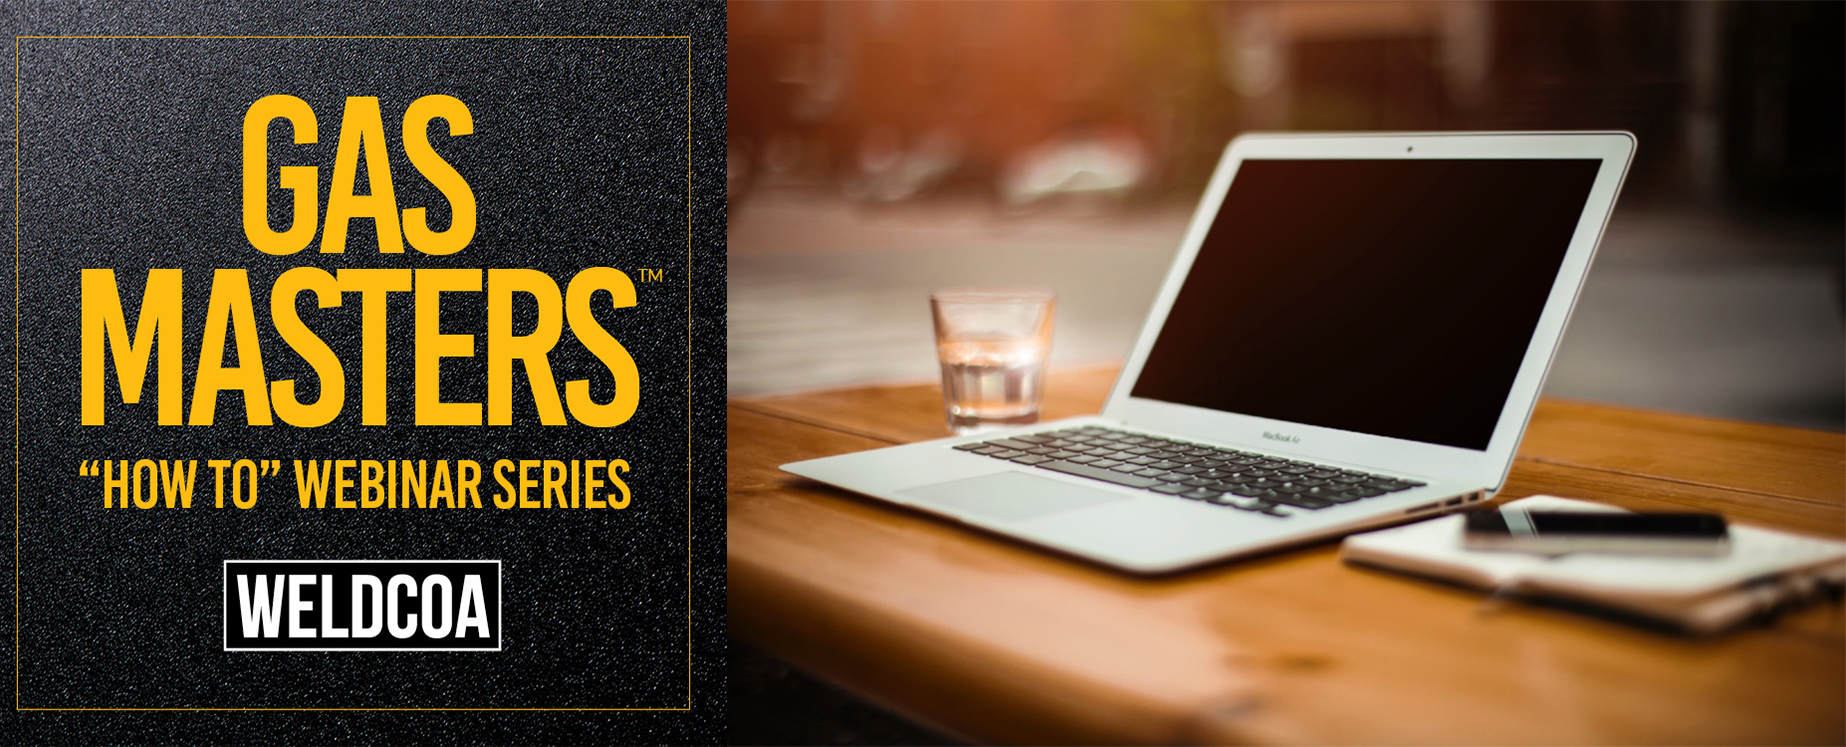 Gas Masters How To Webinar Series Graphic